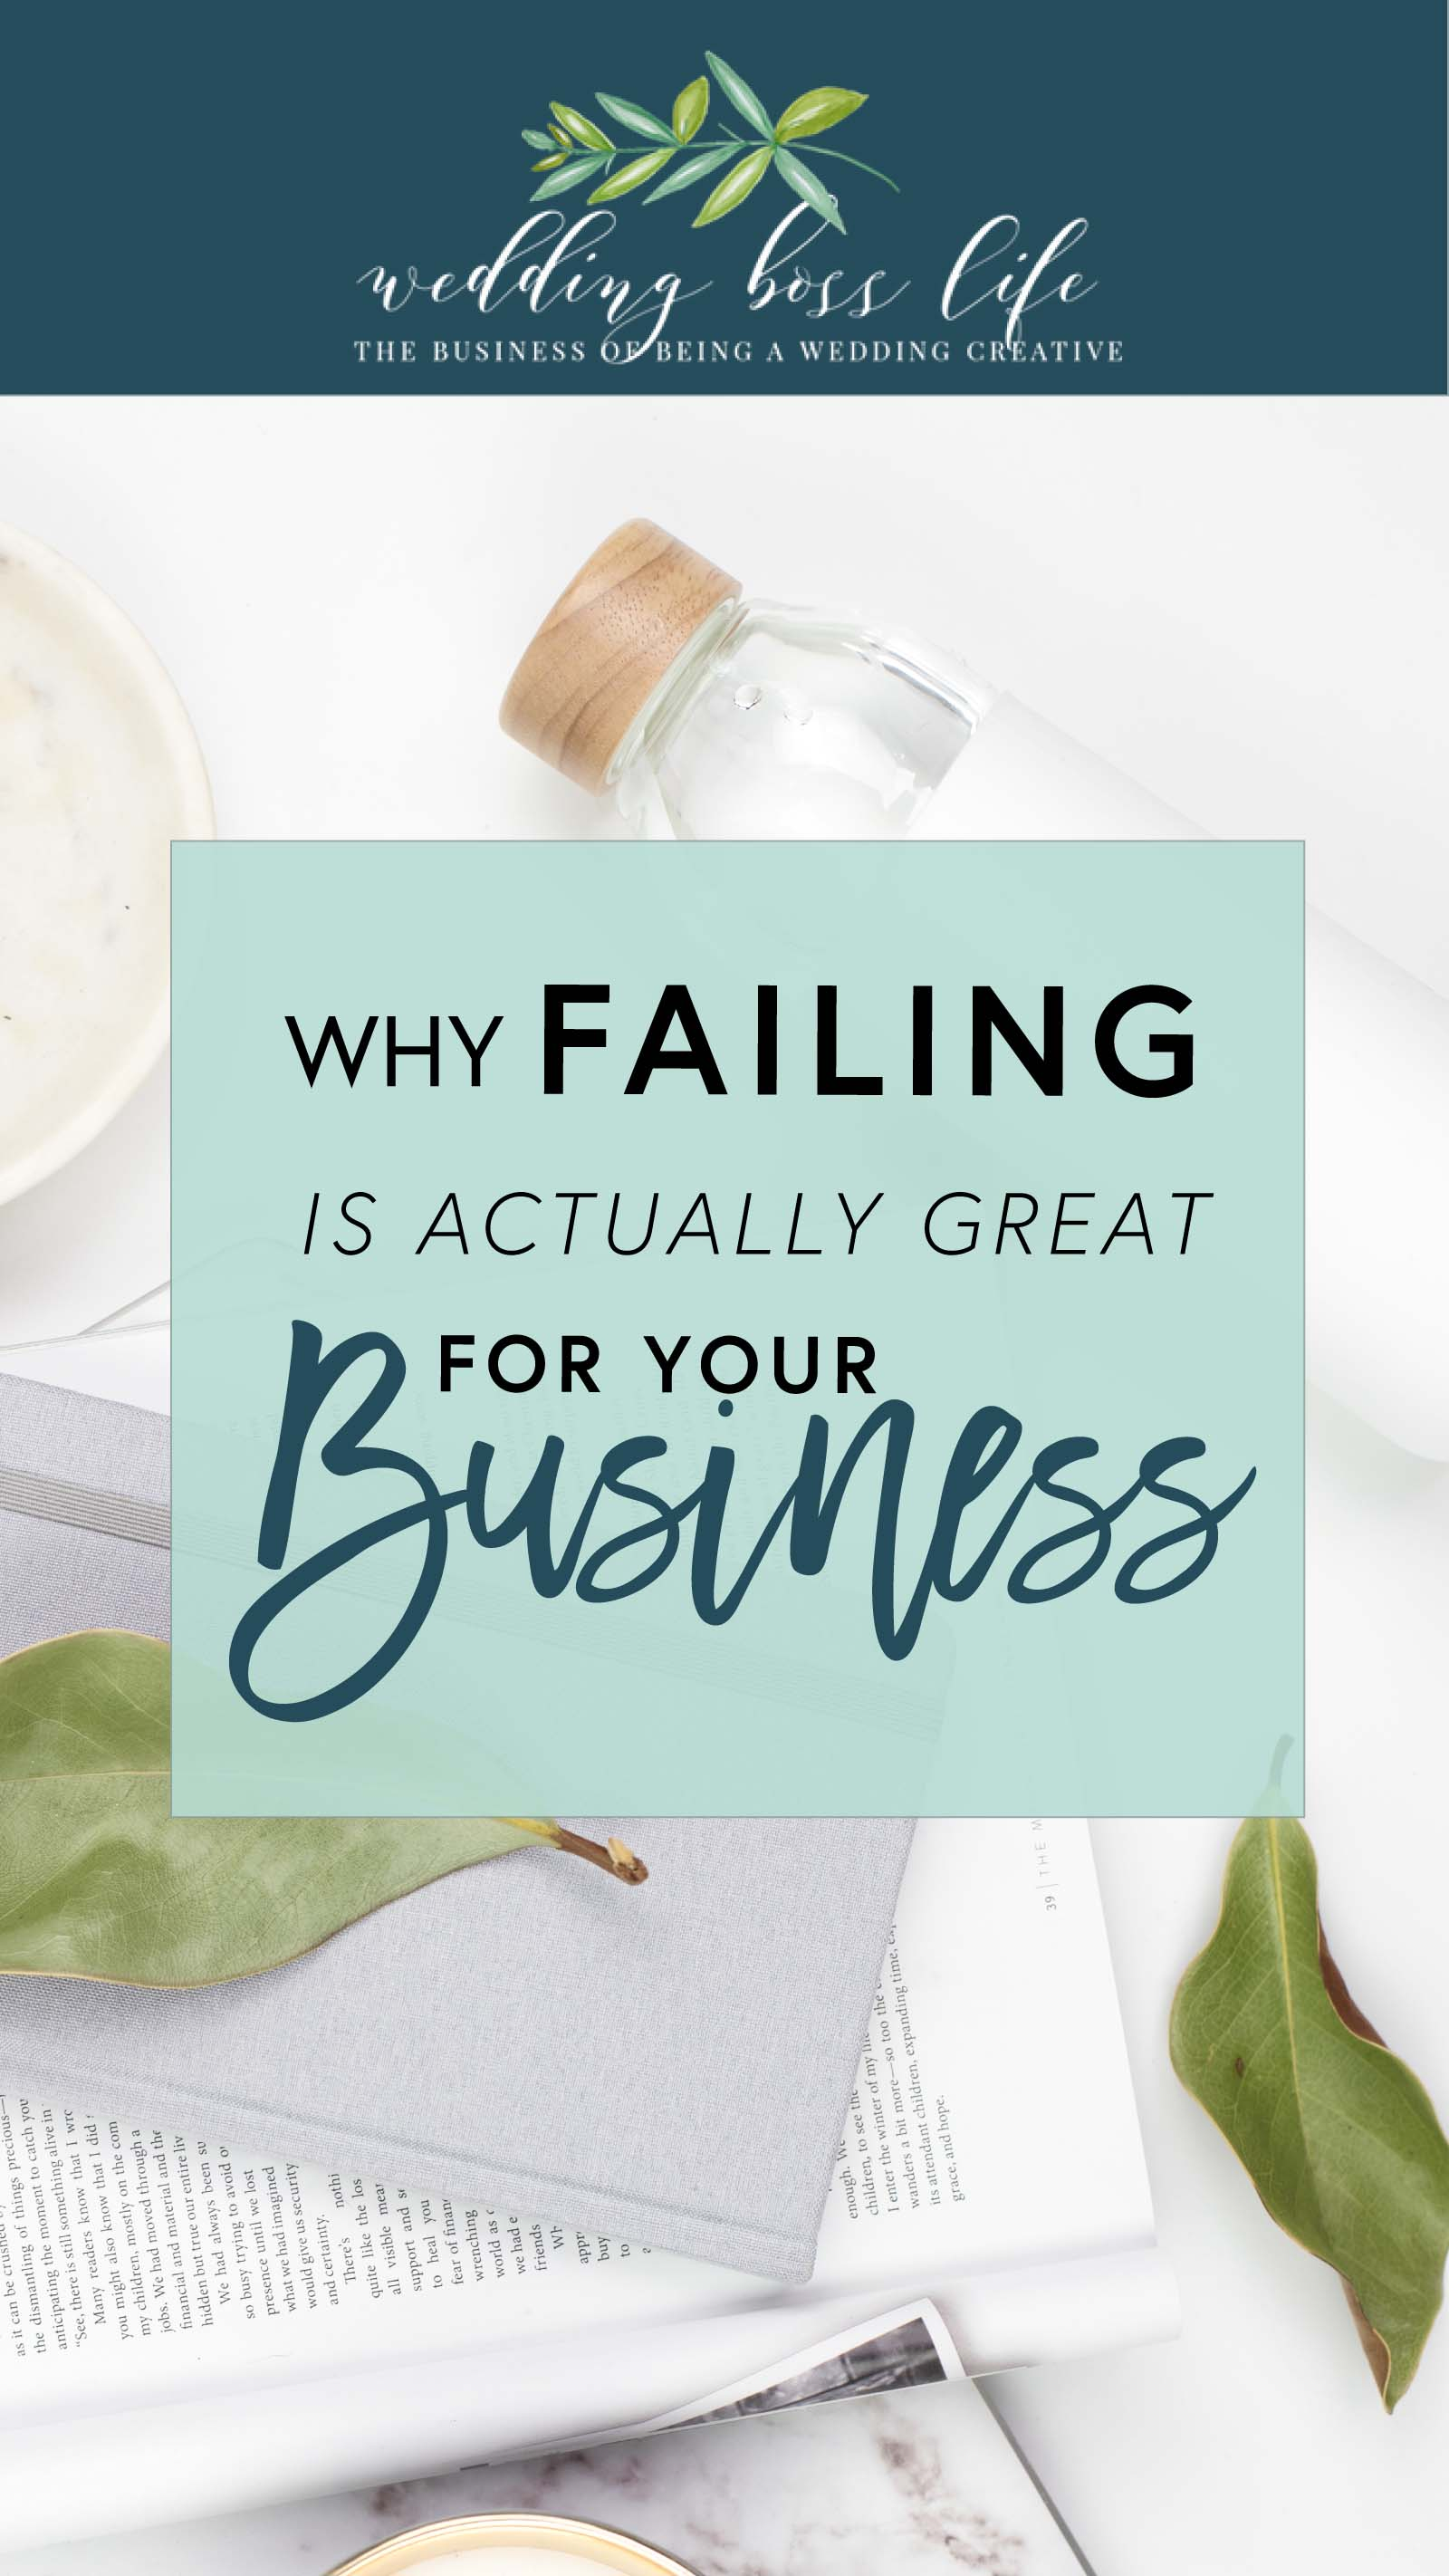 Why failing is actually great for your business